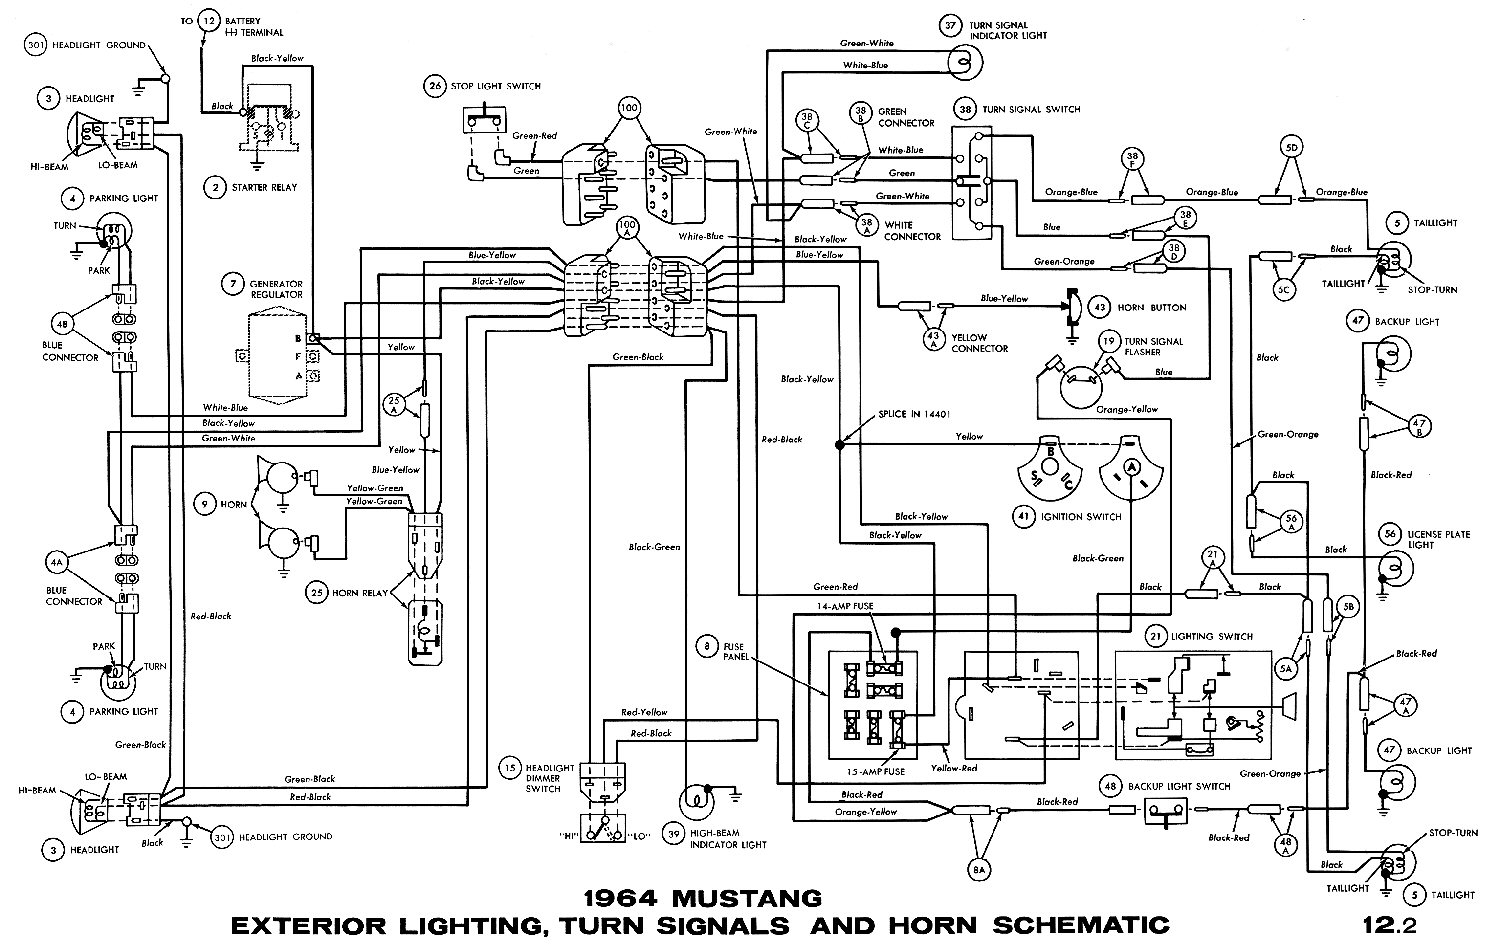 Ford Mustang Wiring Schema Diagrams Tail Light 2015 Diagram Blogs 1973 1965